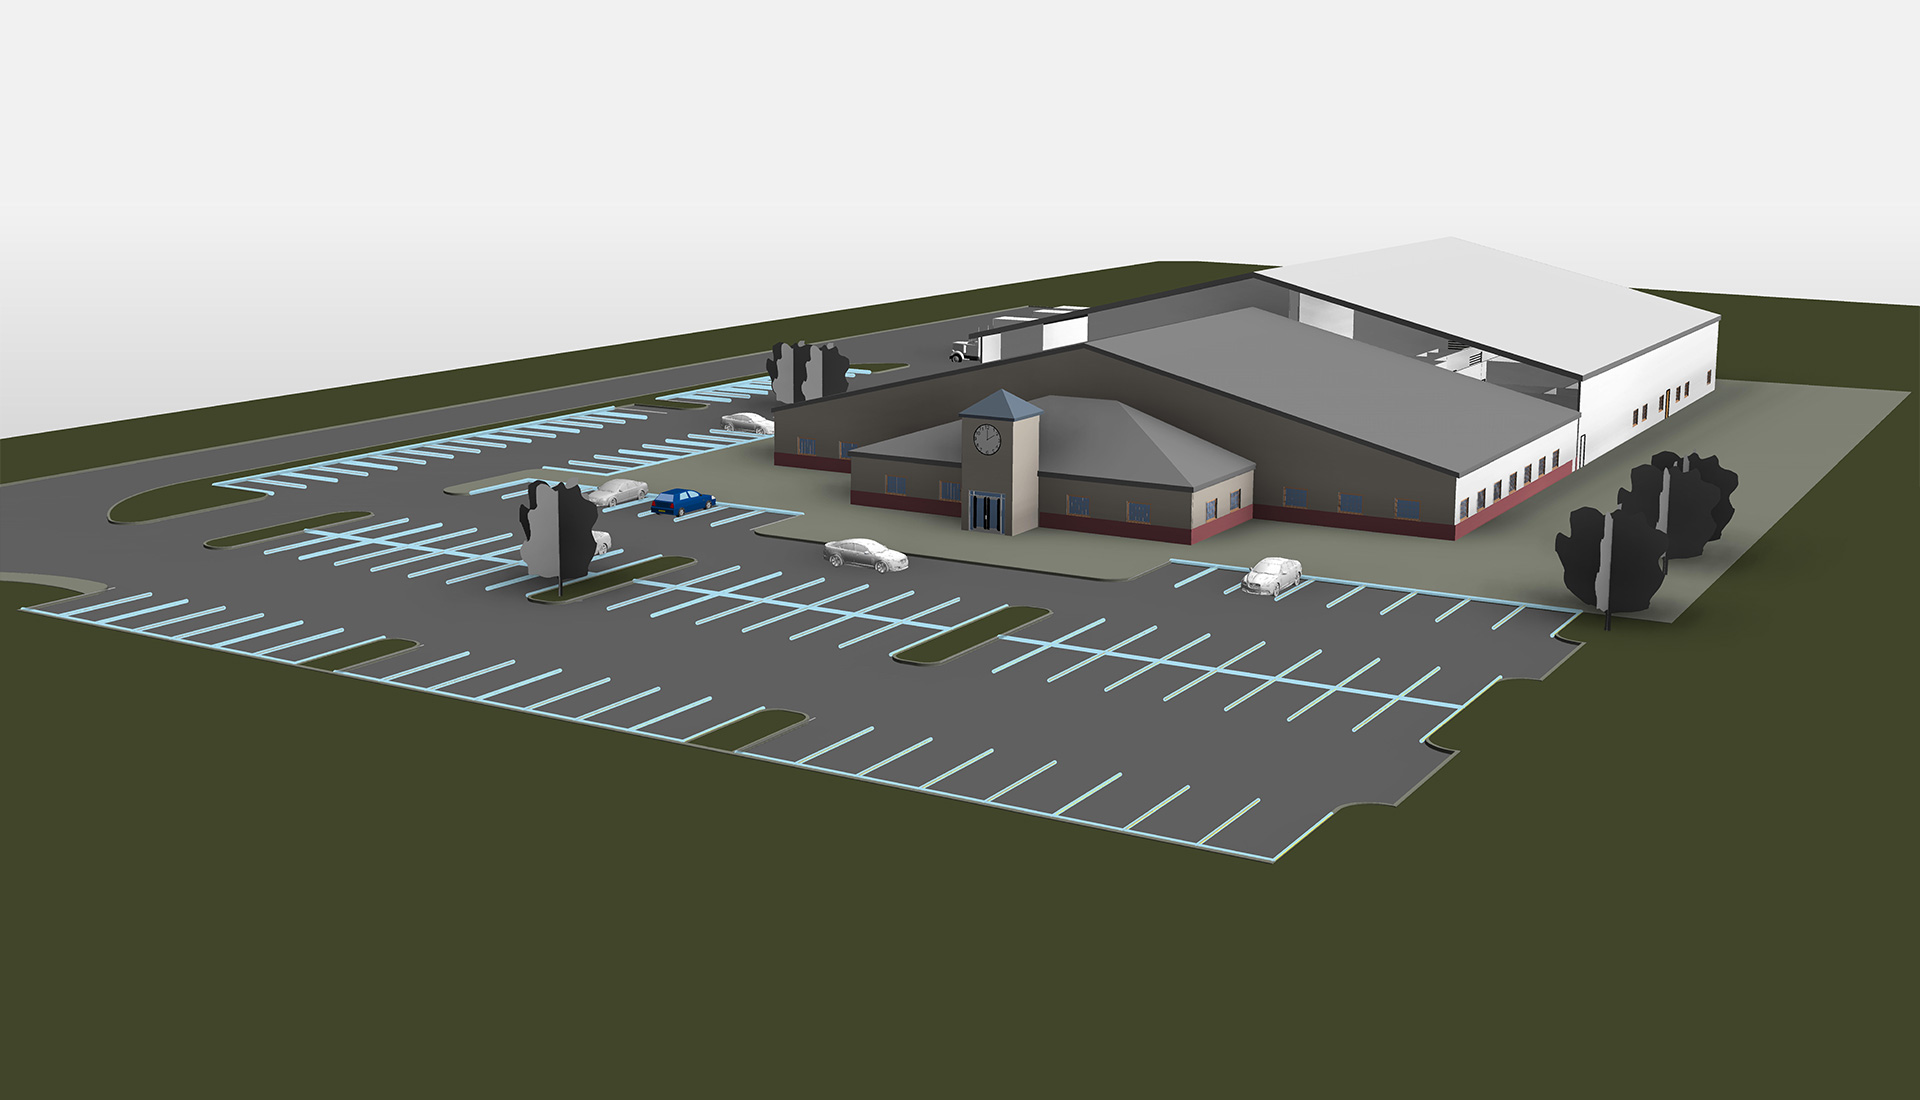 LOD-200-Model--Complete-3D-Architectural-Revit-Model-with-Parking_Industrial-Project_Revit-Modeling-by-United-BIM